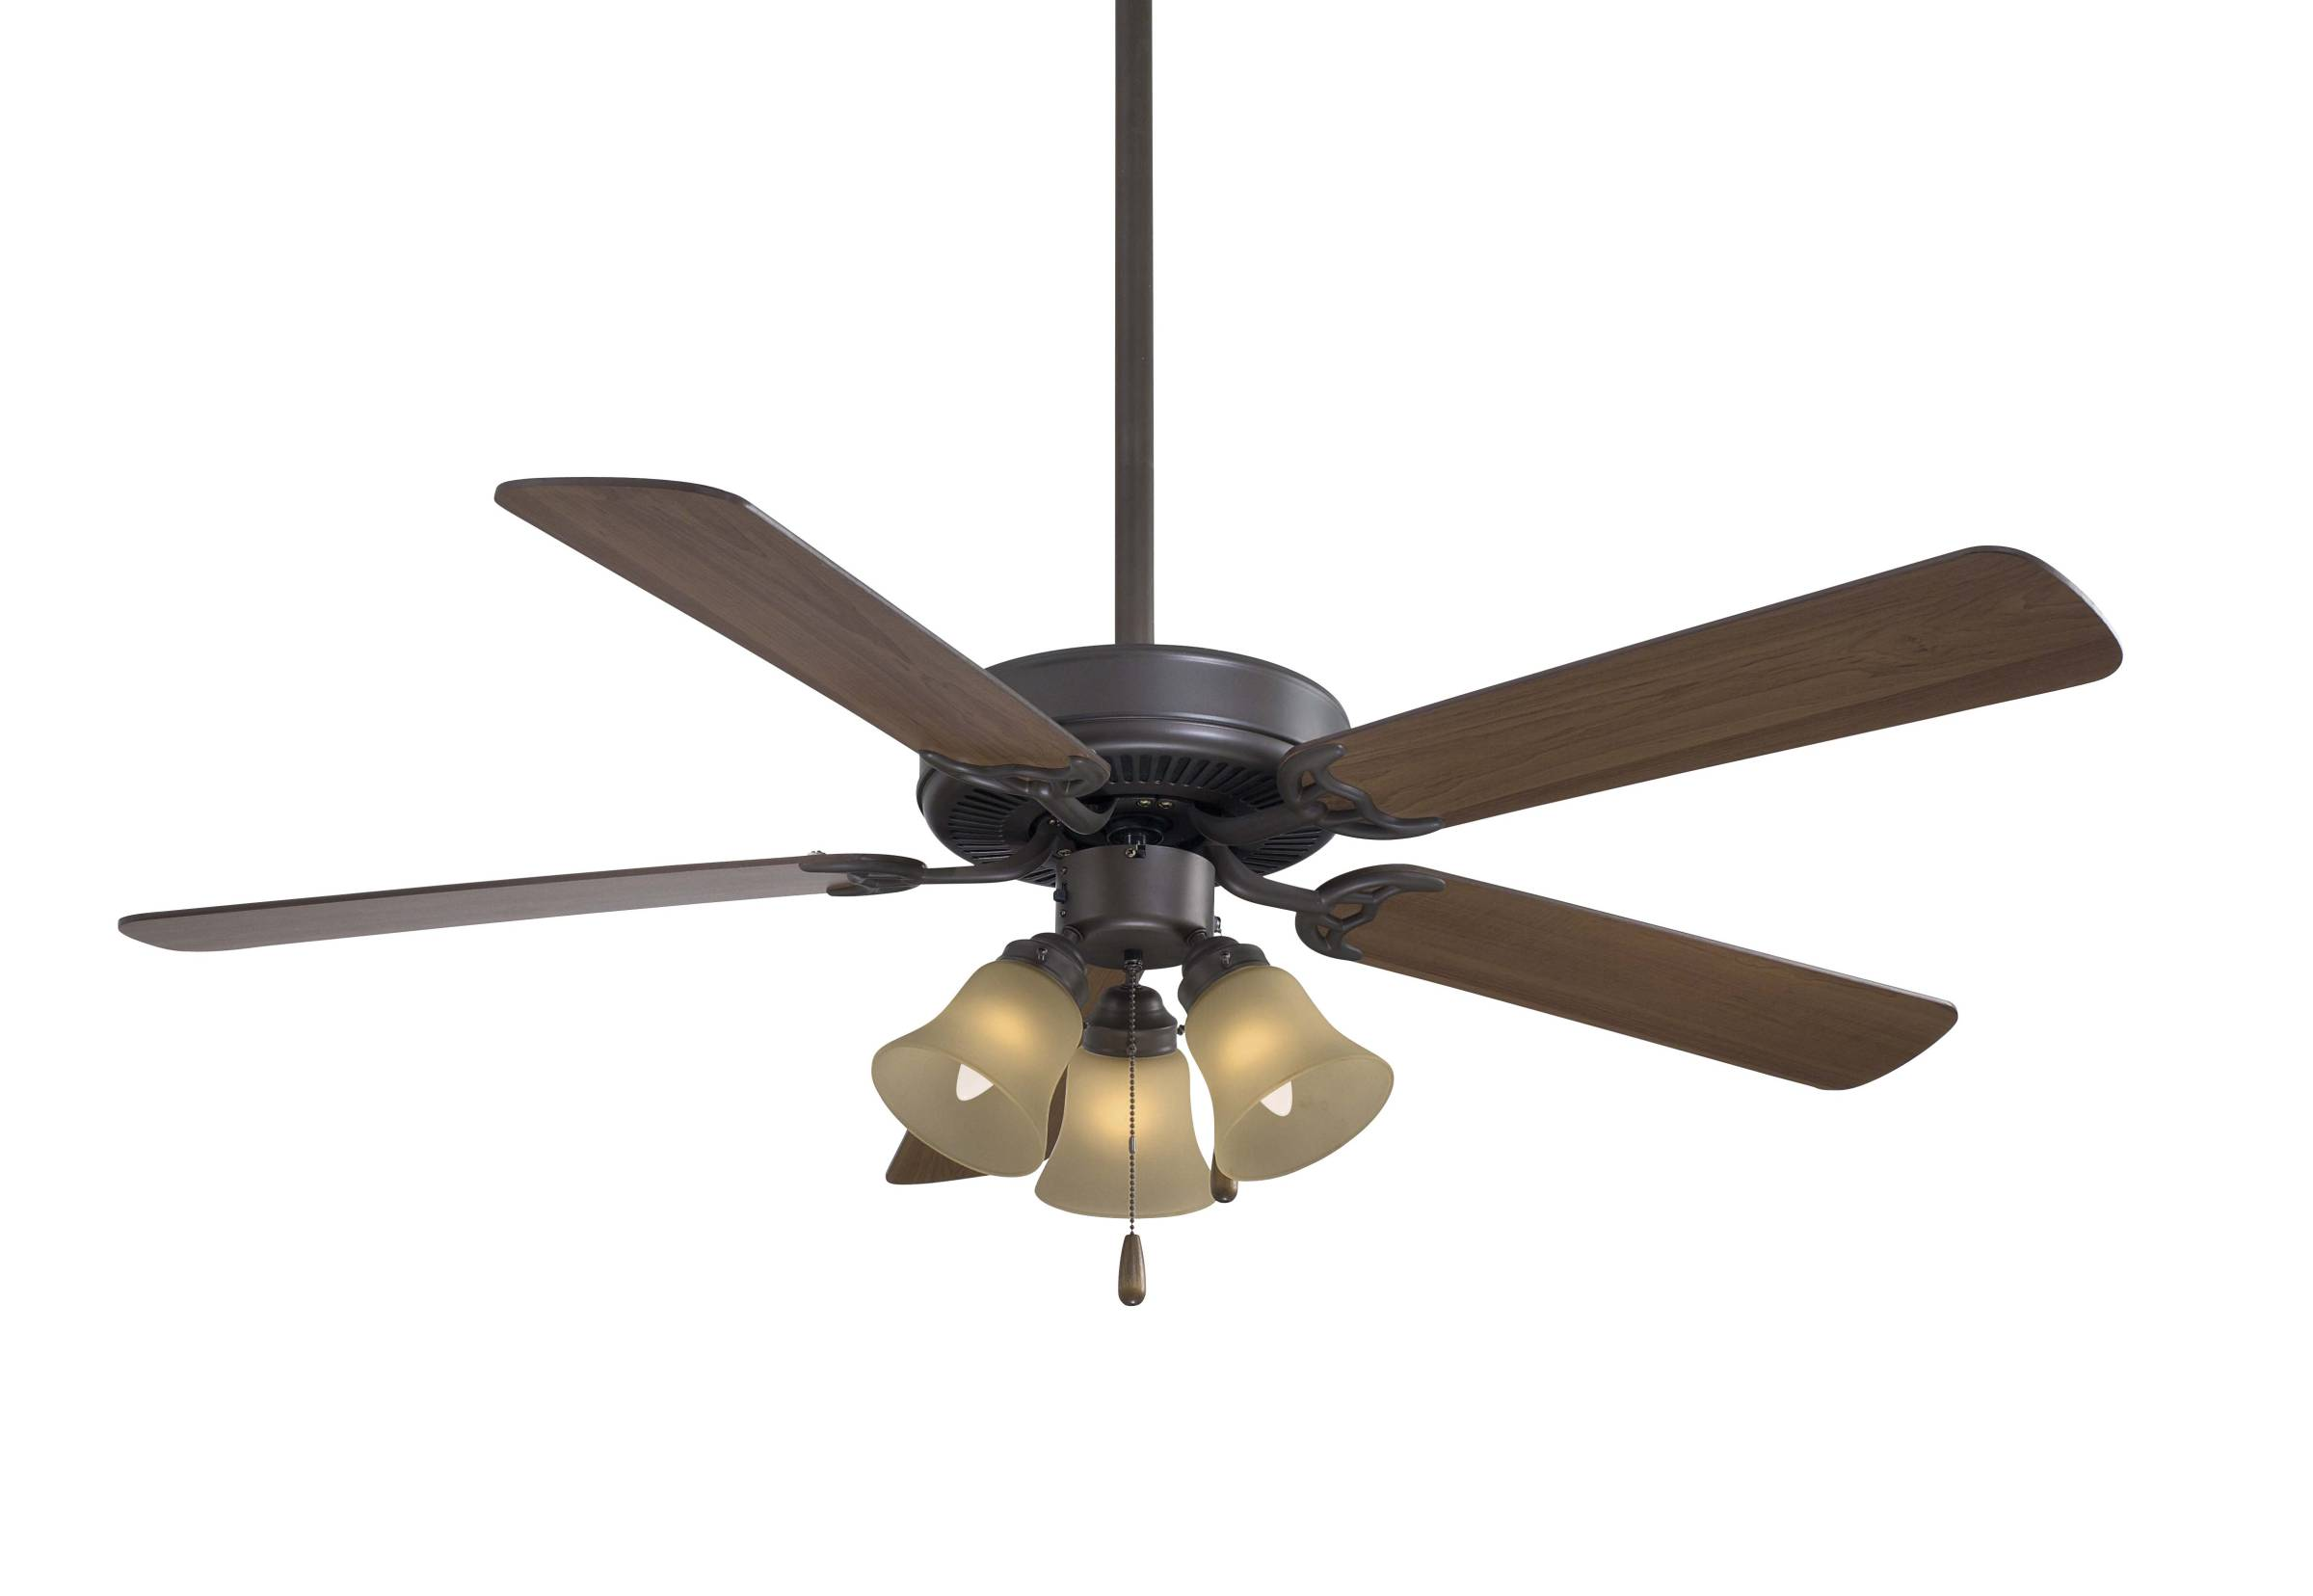 New Ceiling Fan W Light Pictures Beautiful Furniture Home Ideas Australian Wiring Diagram Arlec With